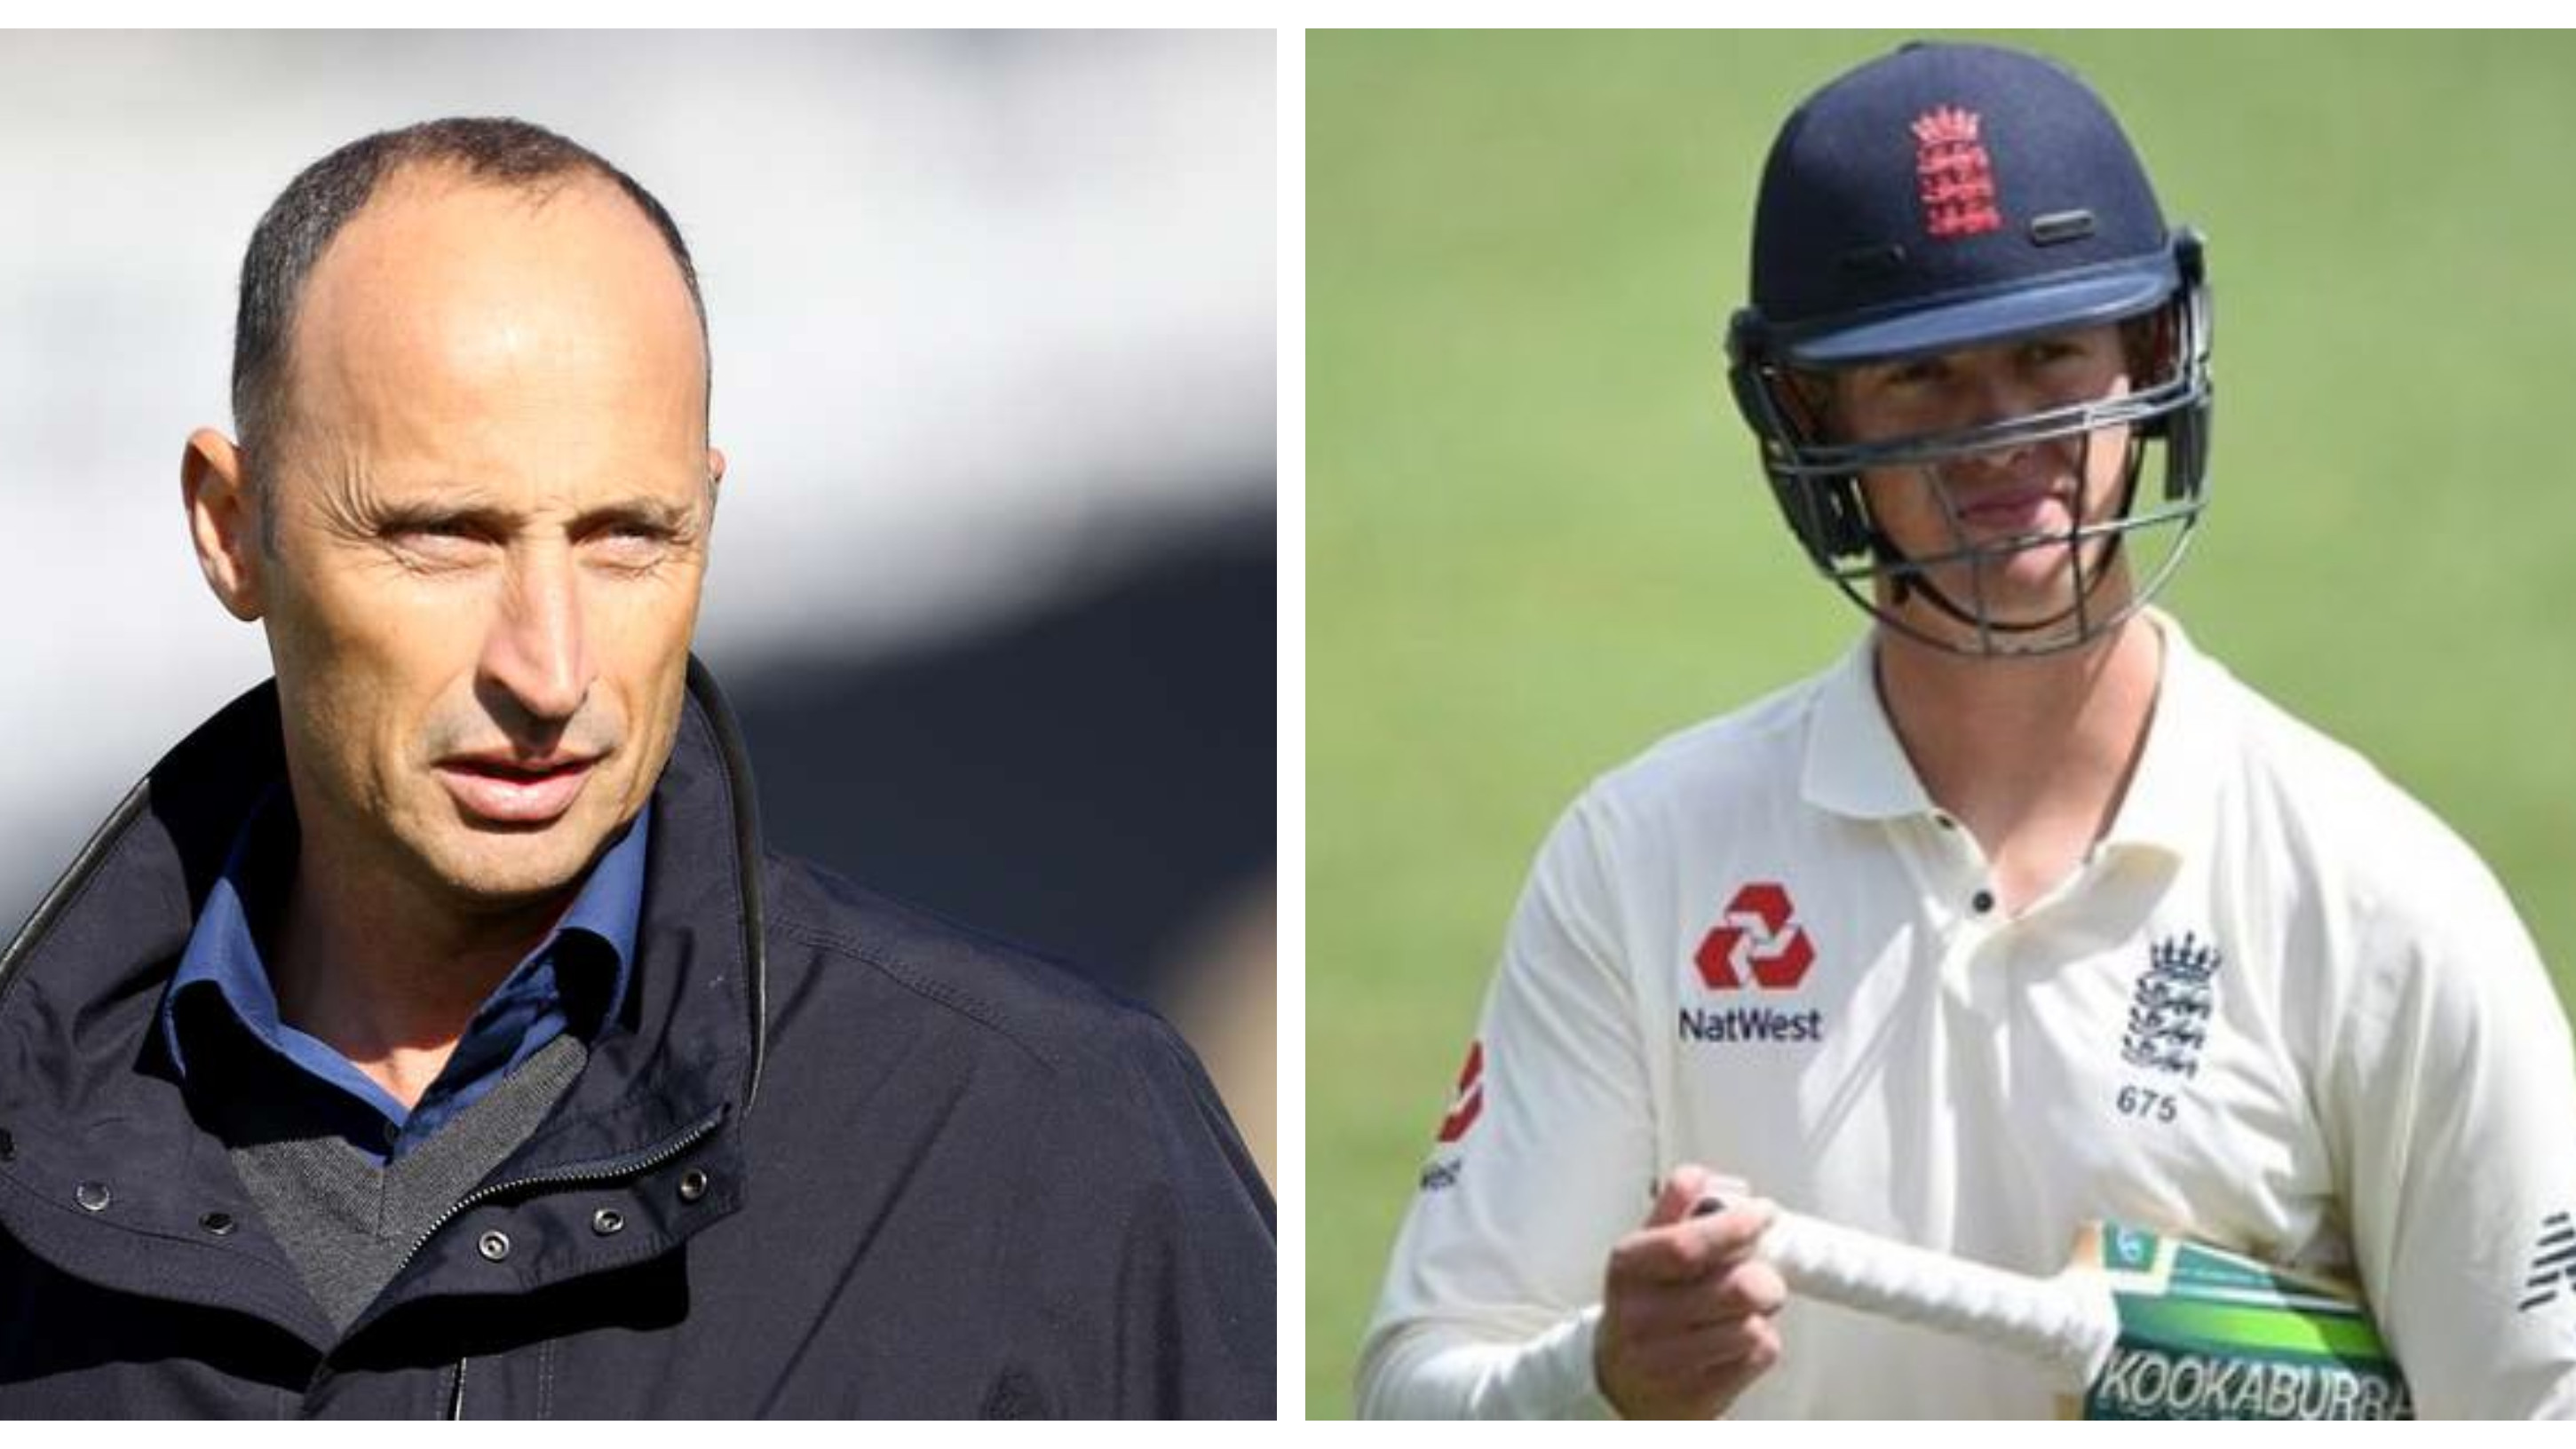 ENG vs IND 2018: Nasser Hussain highlights on Keaton Jennings's vulnerability as an opener